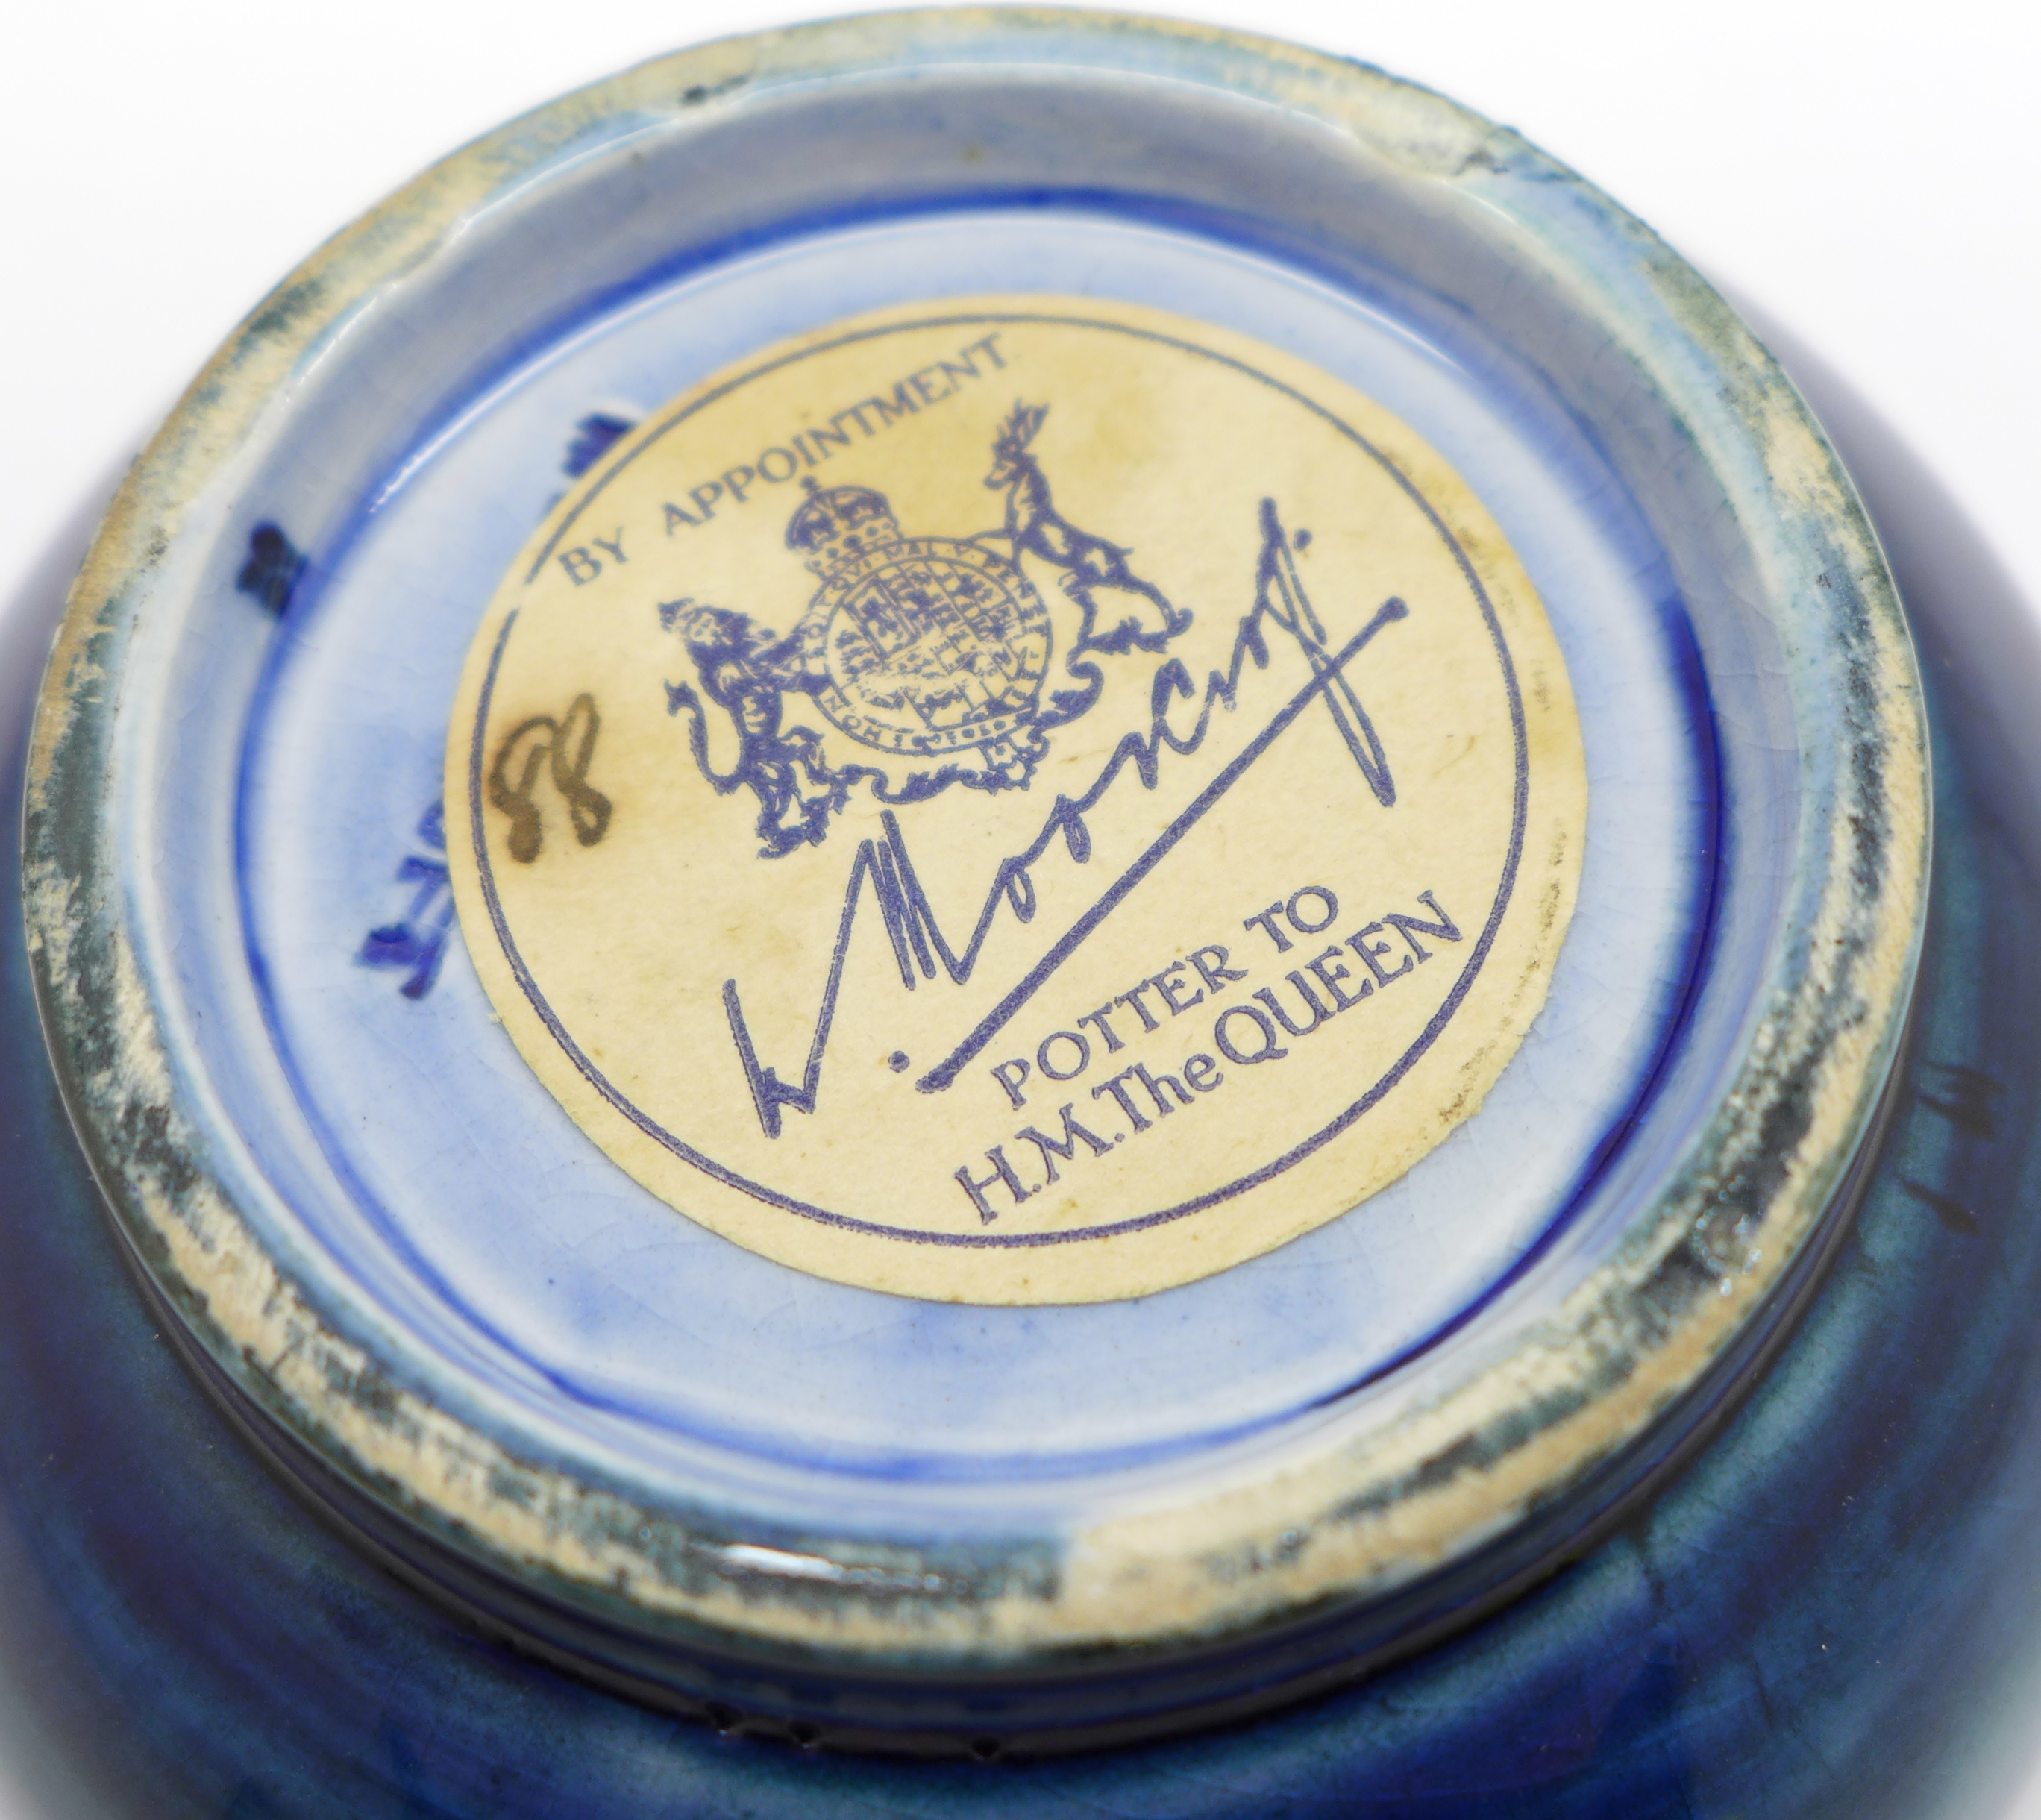 A small Moorcroft pansy bowl, with paper label, By Appointment to H.M. The Queen, 78mm diameter - Image 6 of 6